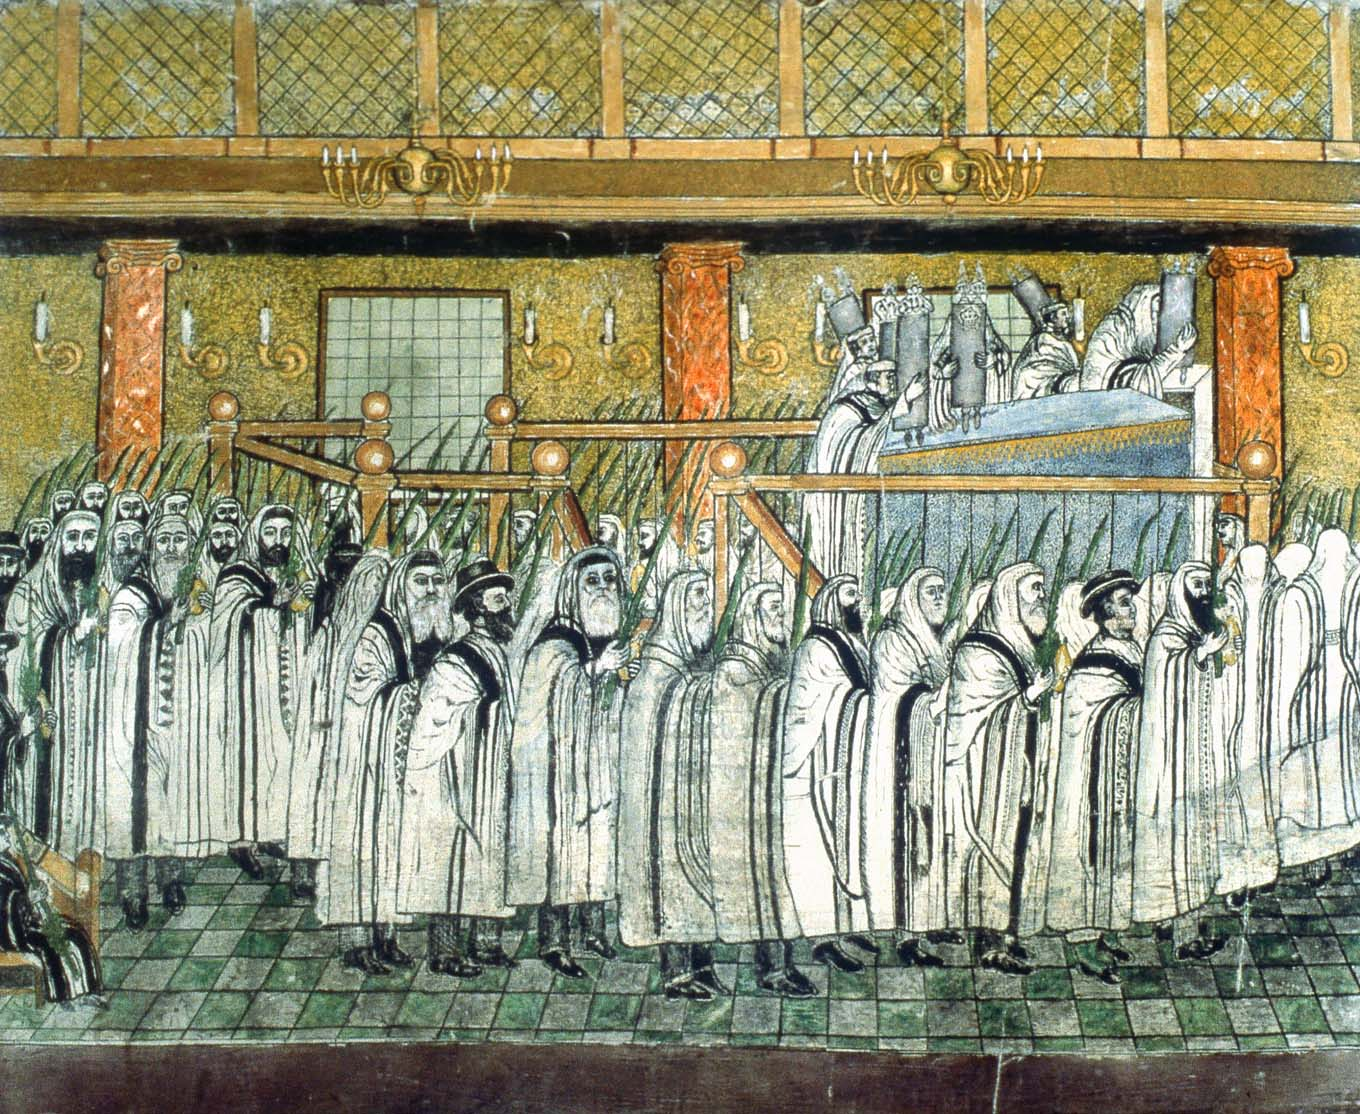 Lulav and etrog in hand, worshippers circle the reader's platform on Sukkot in the synagogue, as featured on the Sukka's lower panel